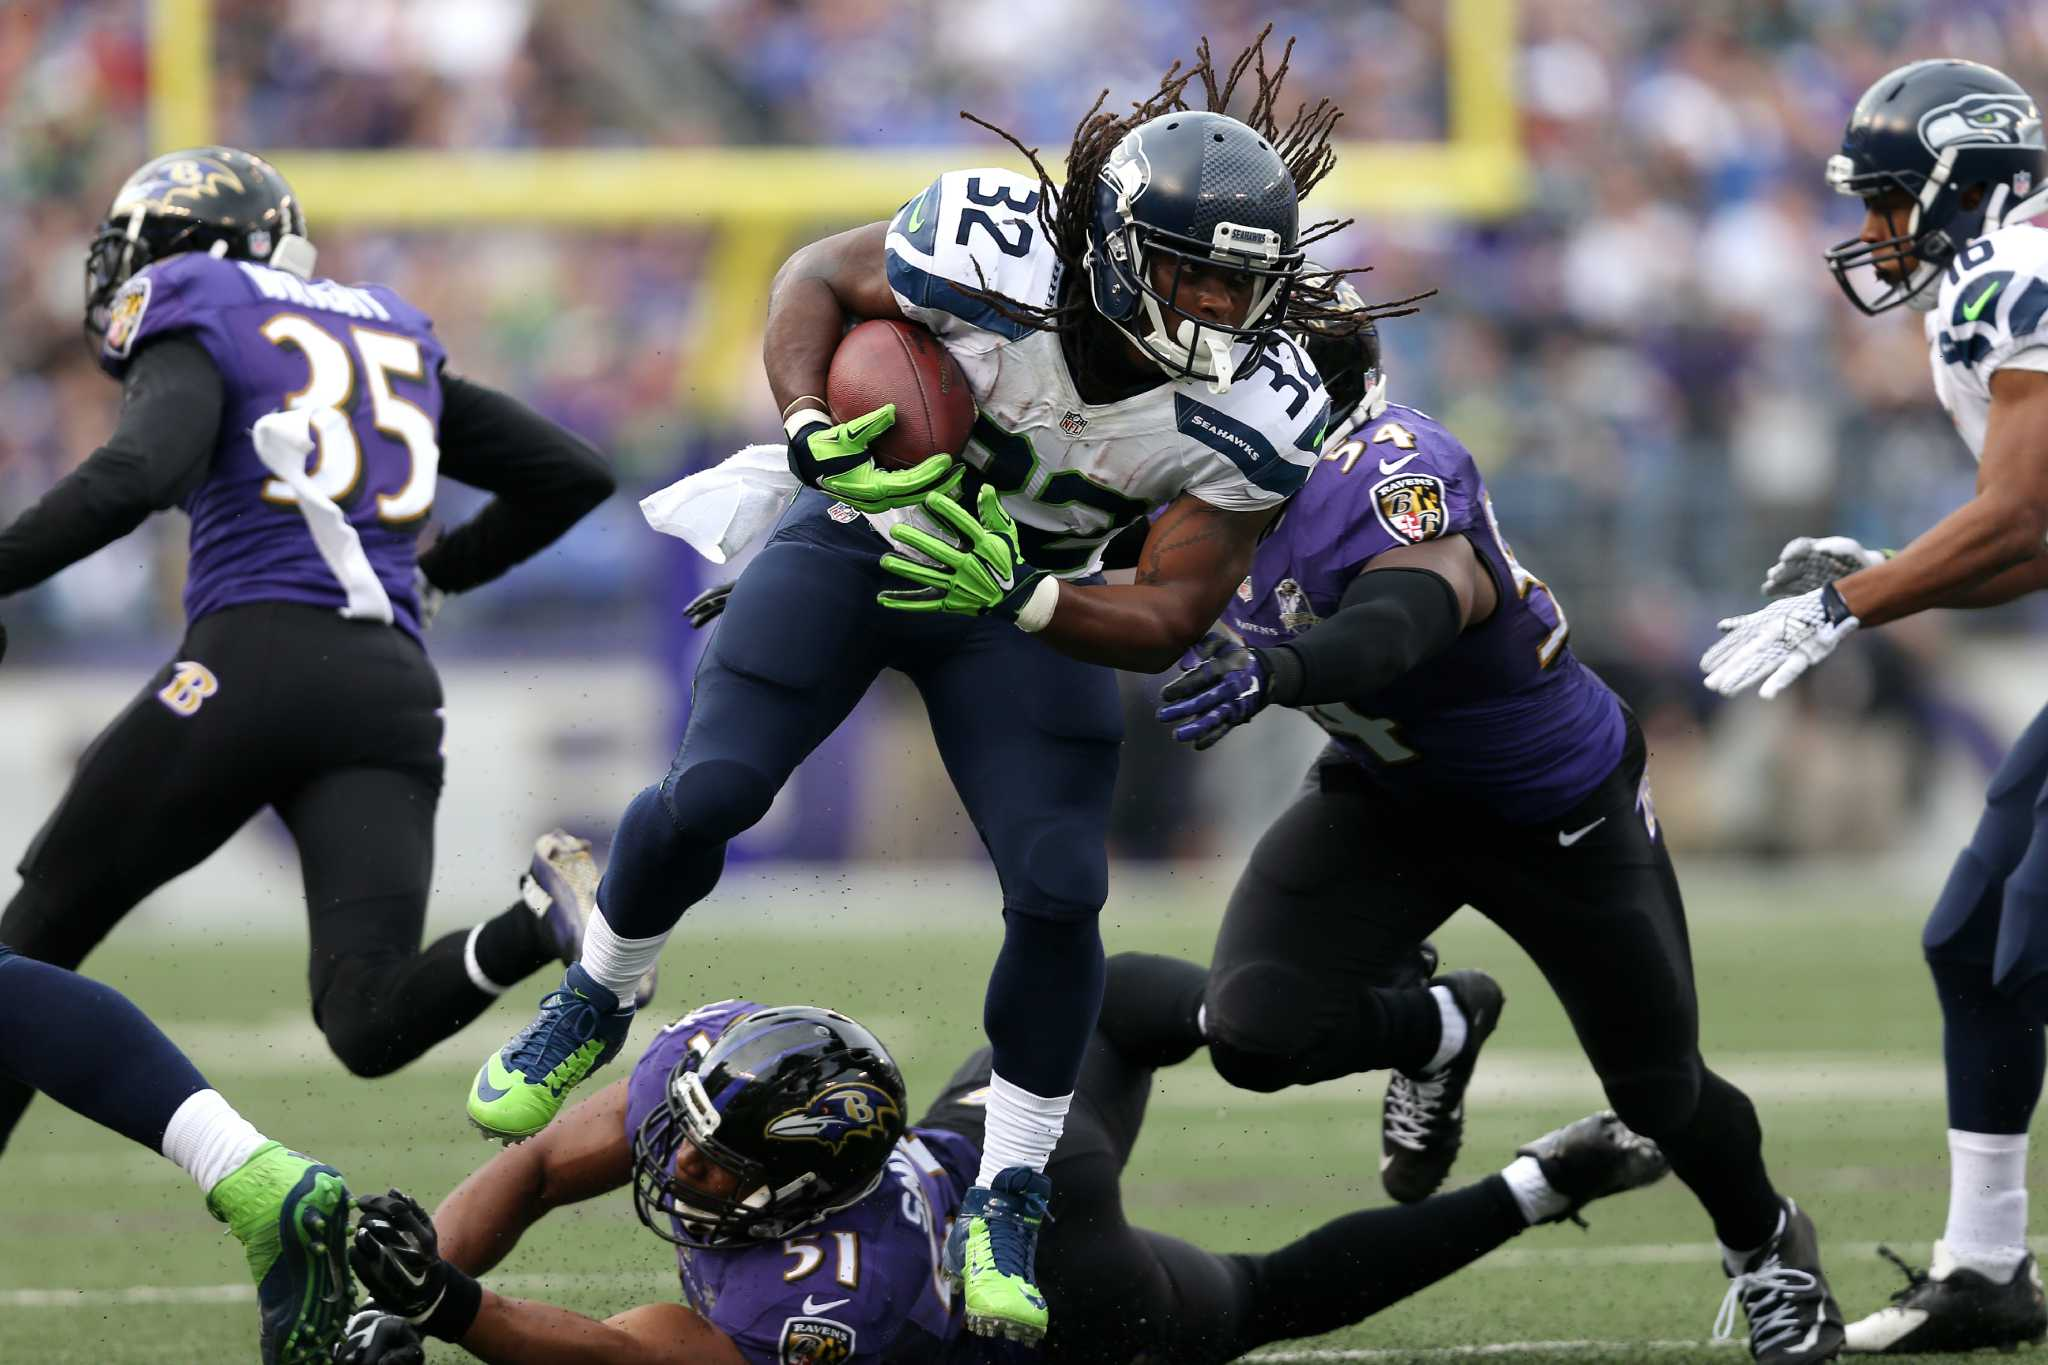 Seattle Seahawks release RB DuJuan Harris, sign RB Bryce